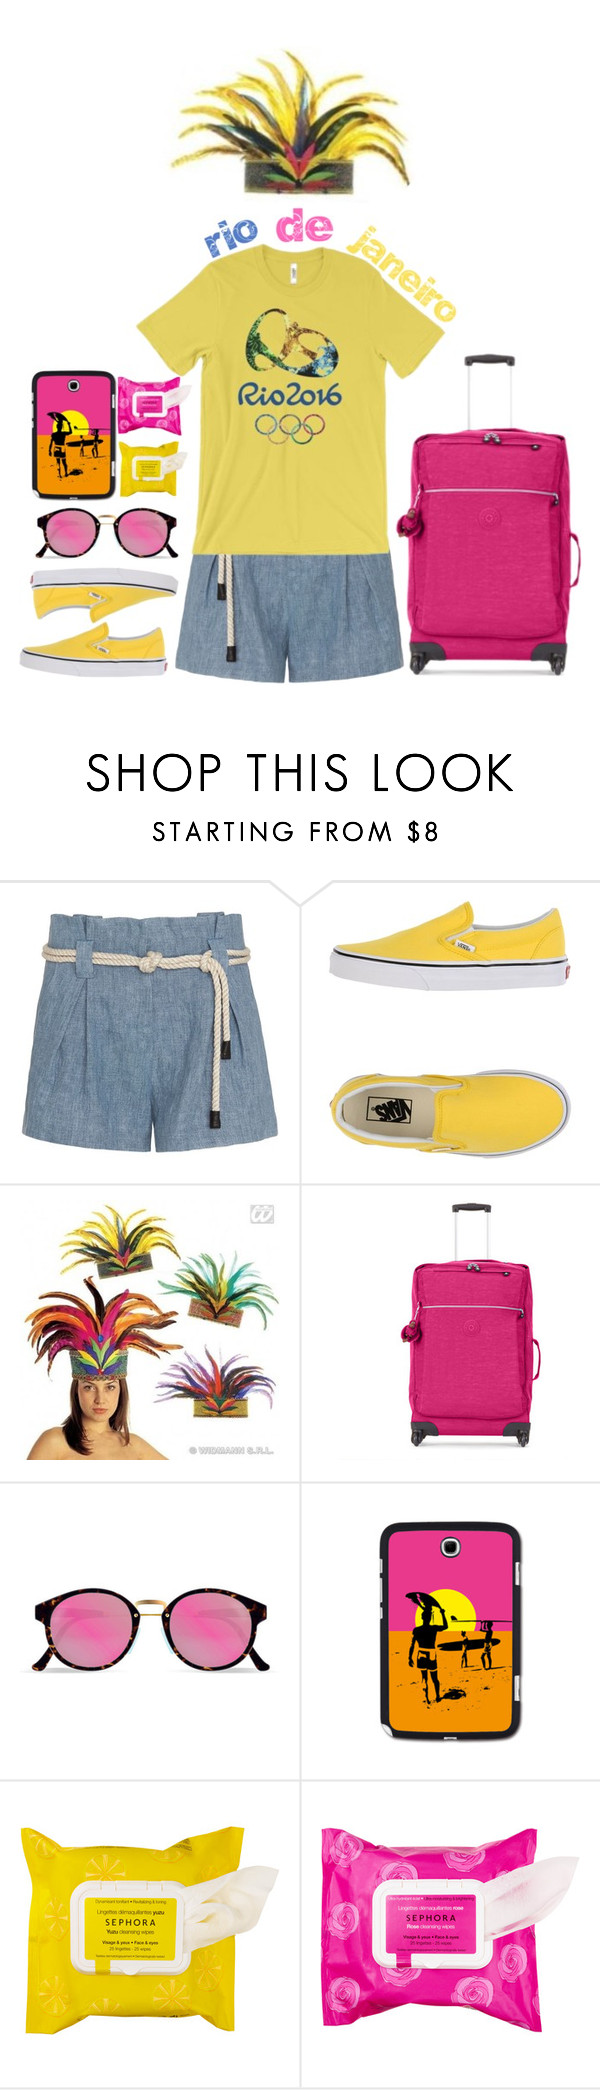 """""""Pack and Go: Rio"""" by meyli-meyli ❤ liked on Polyvore featuring L'Agence, Vans, Kipling, RetroSuperFuture, Samsung, Sephora Collection and rio"""